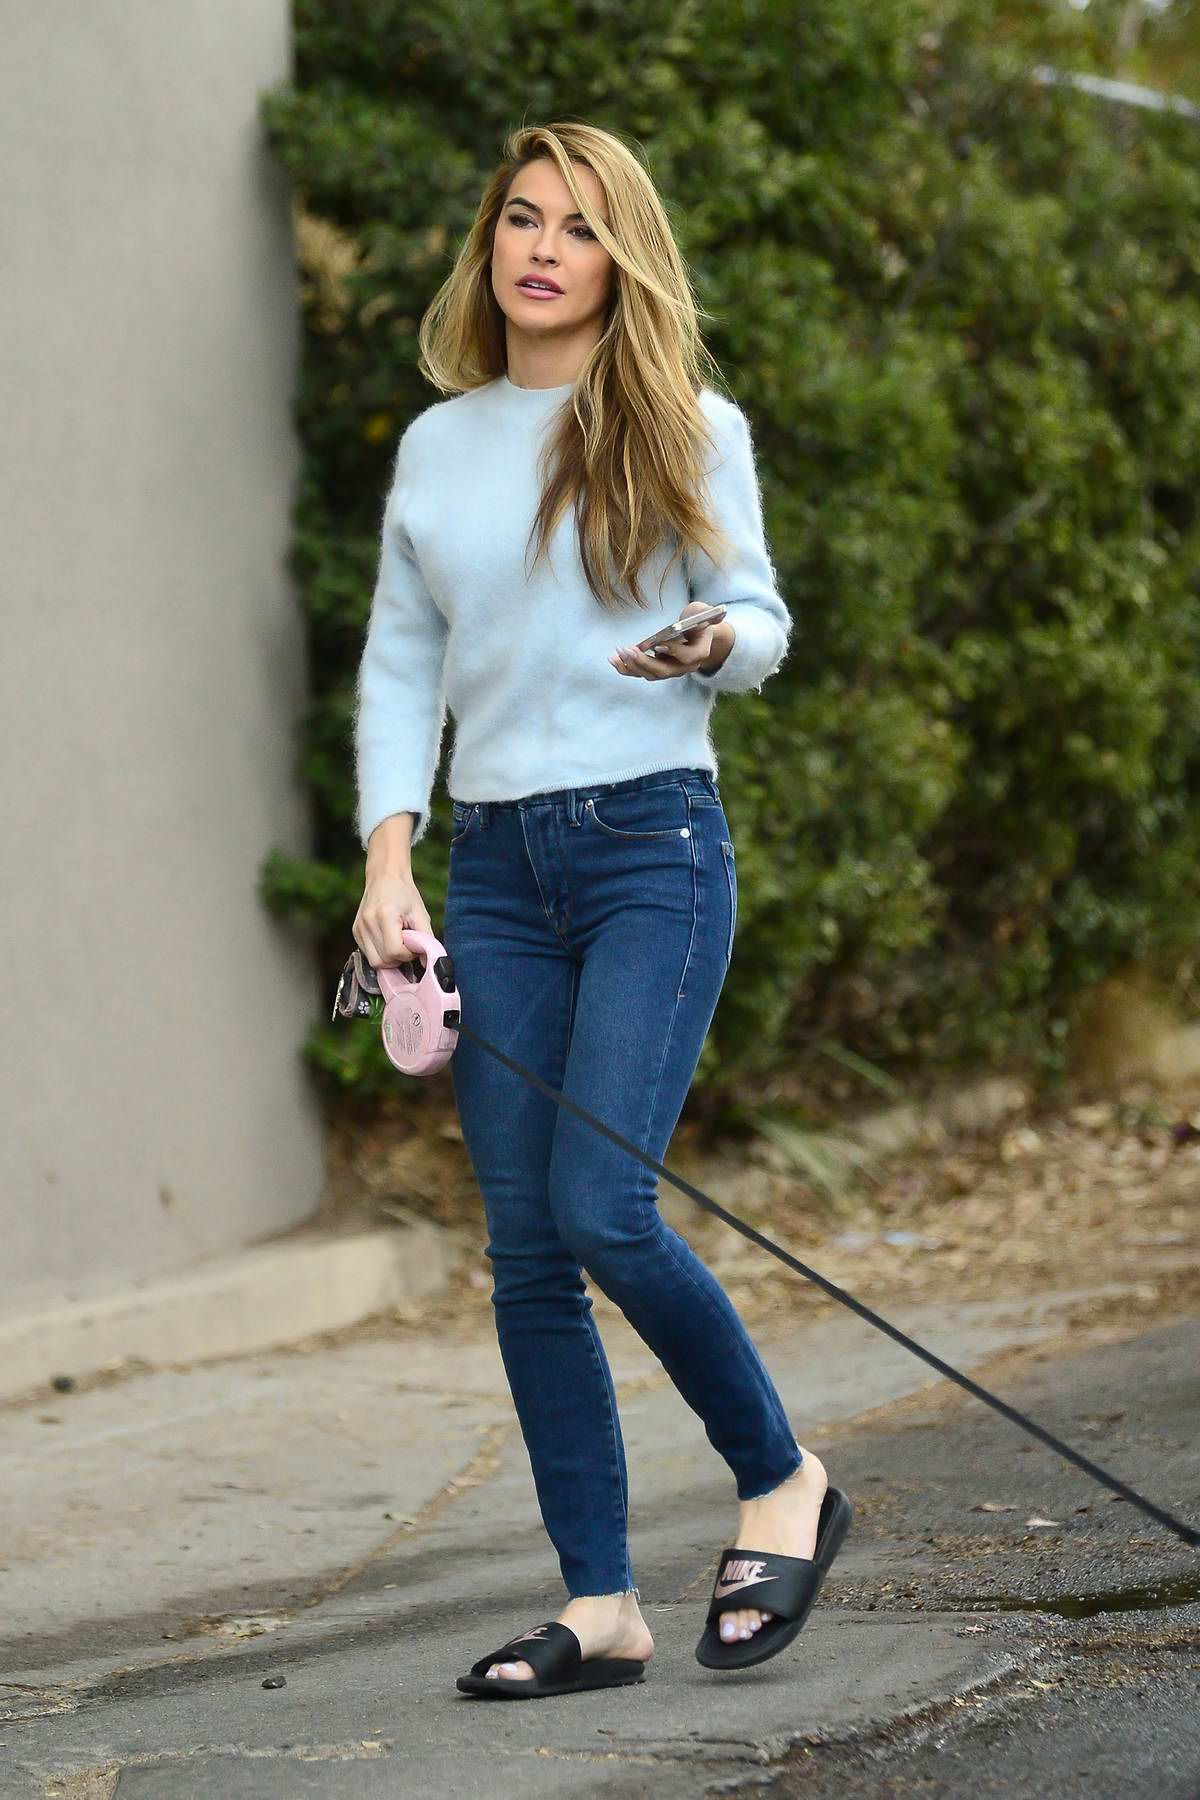 Chrishell Stause looks great in a light blue top and skinny jeans while out for a morning walk in the Hollywood Hills, California